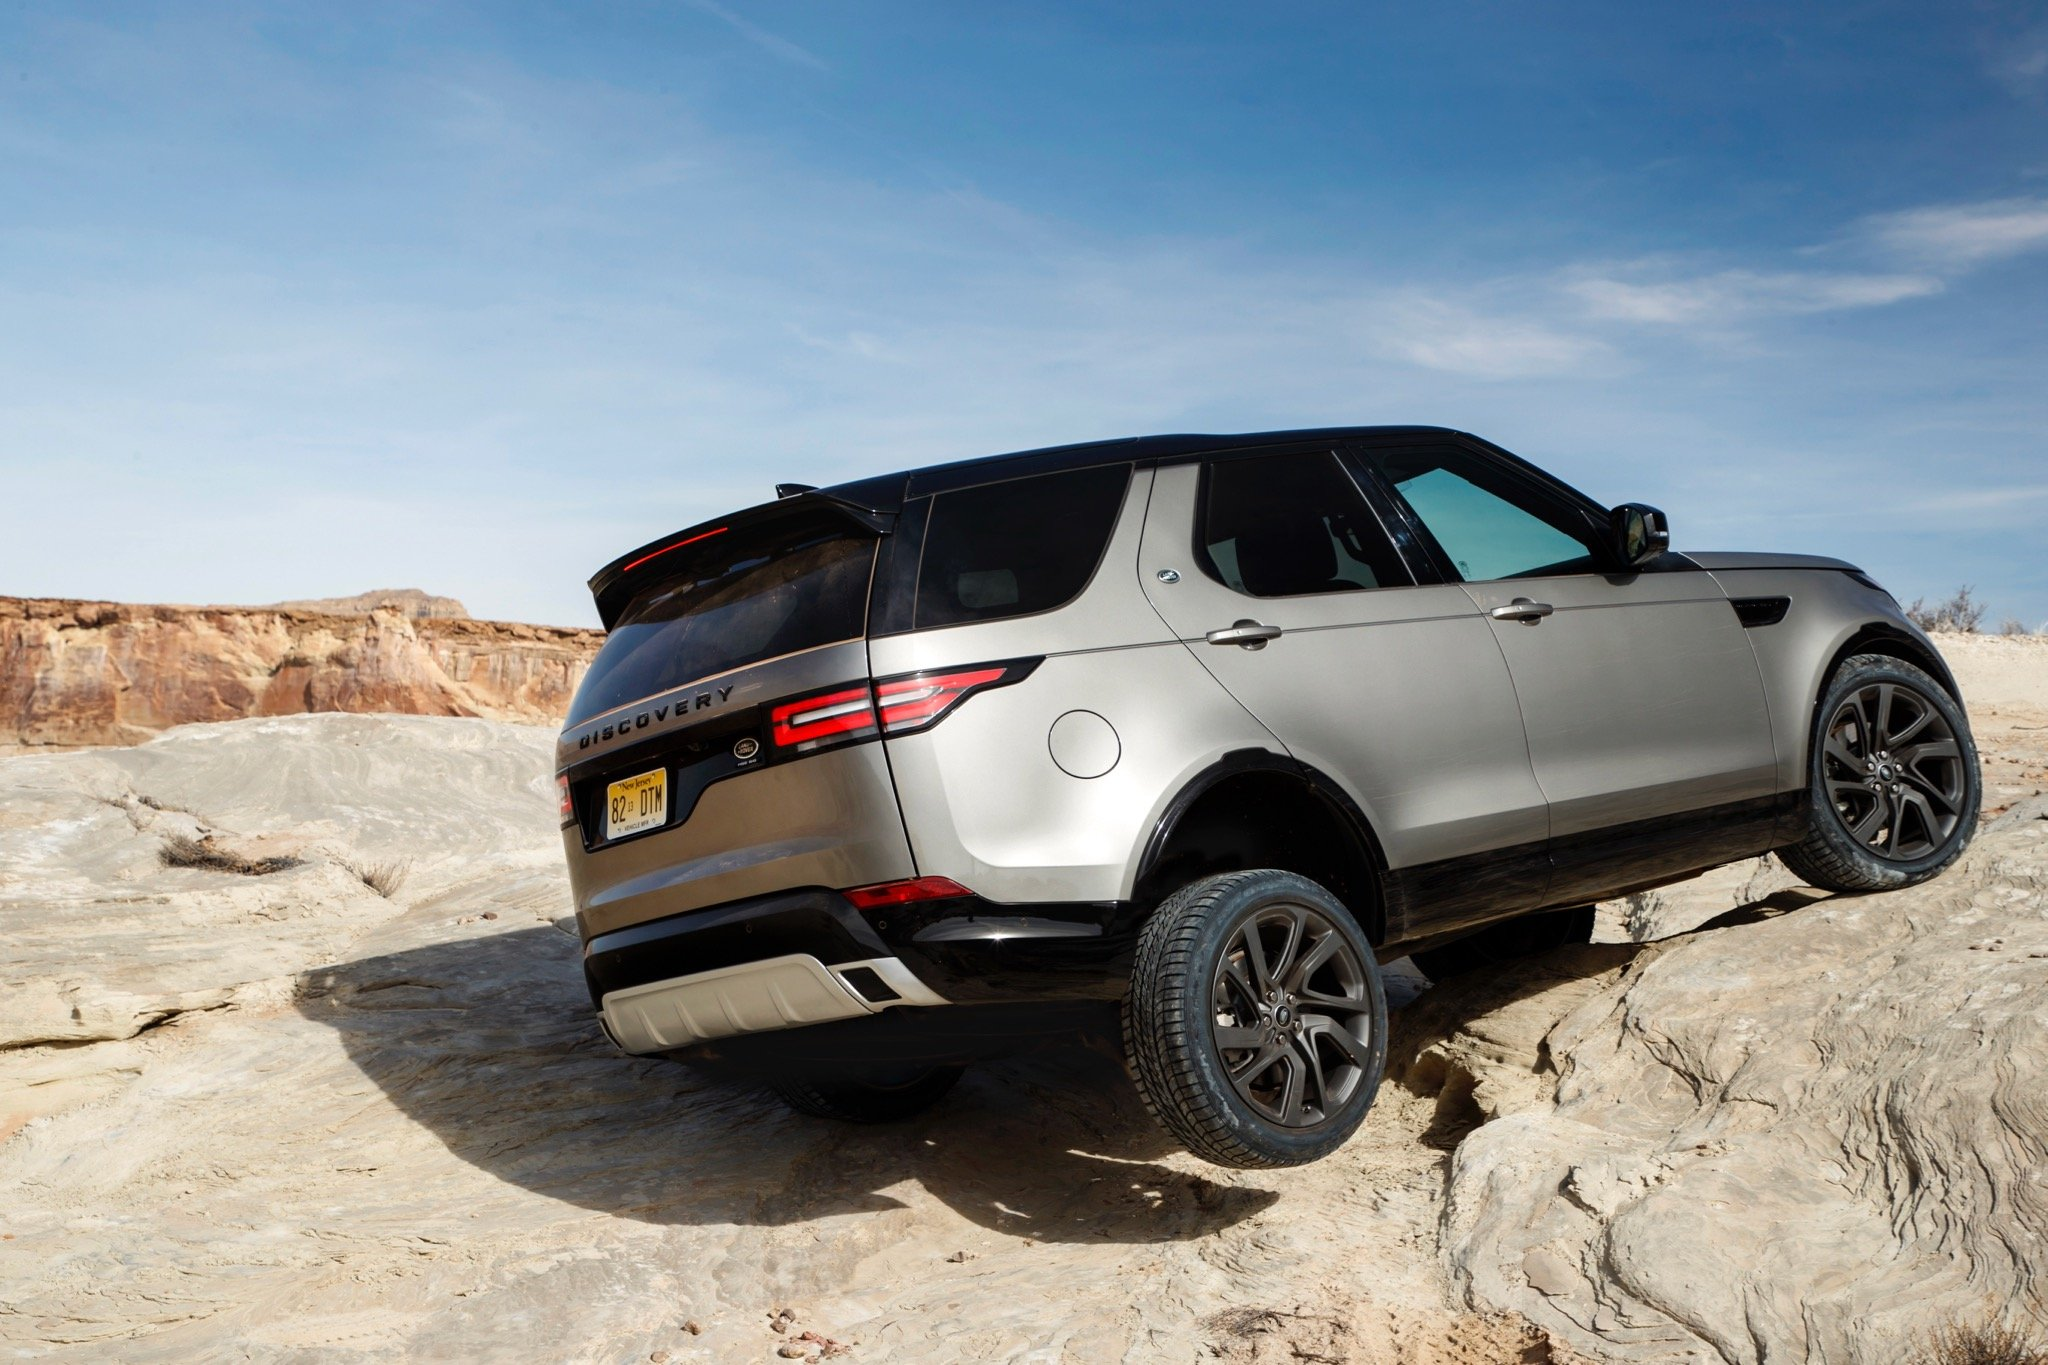 Land Rover >> 2017 Land Rover Discovery review - photos | CarAdvice